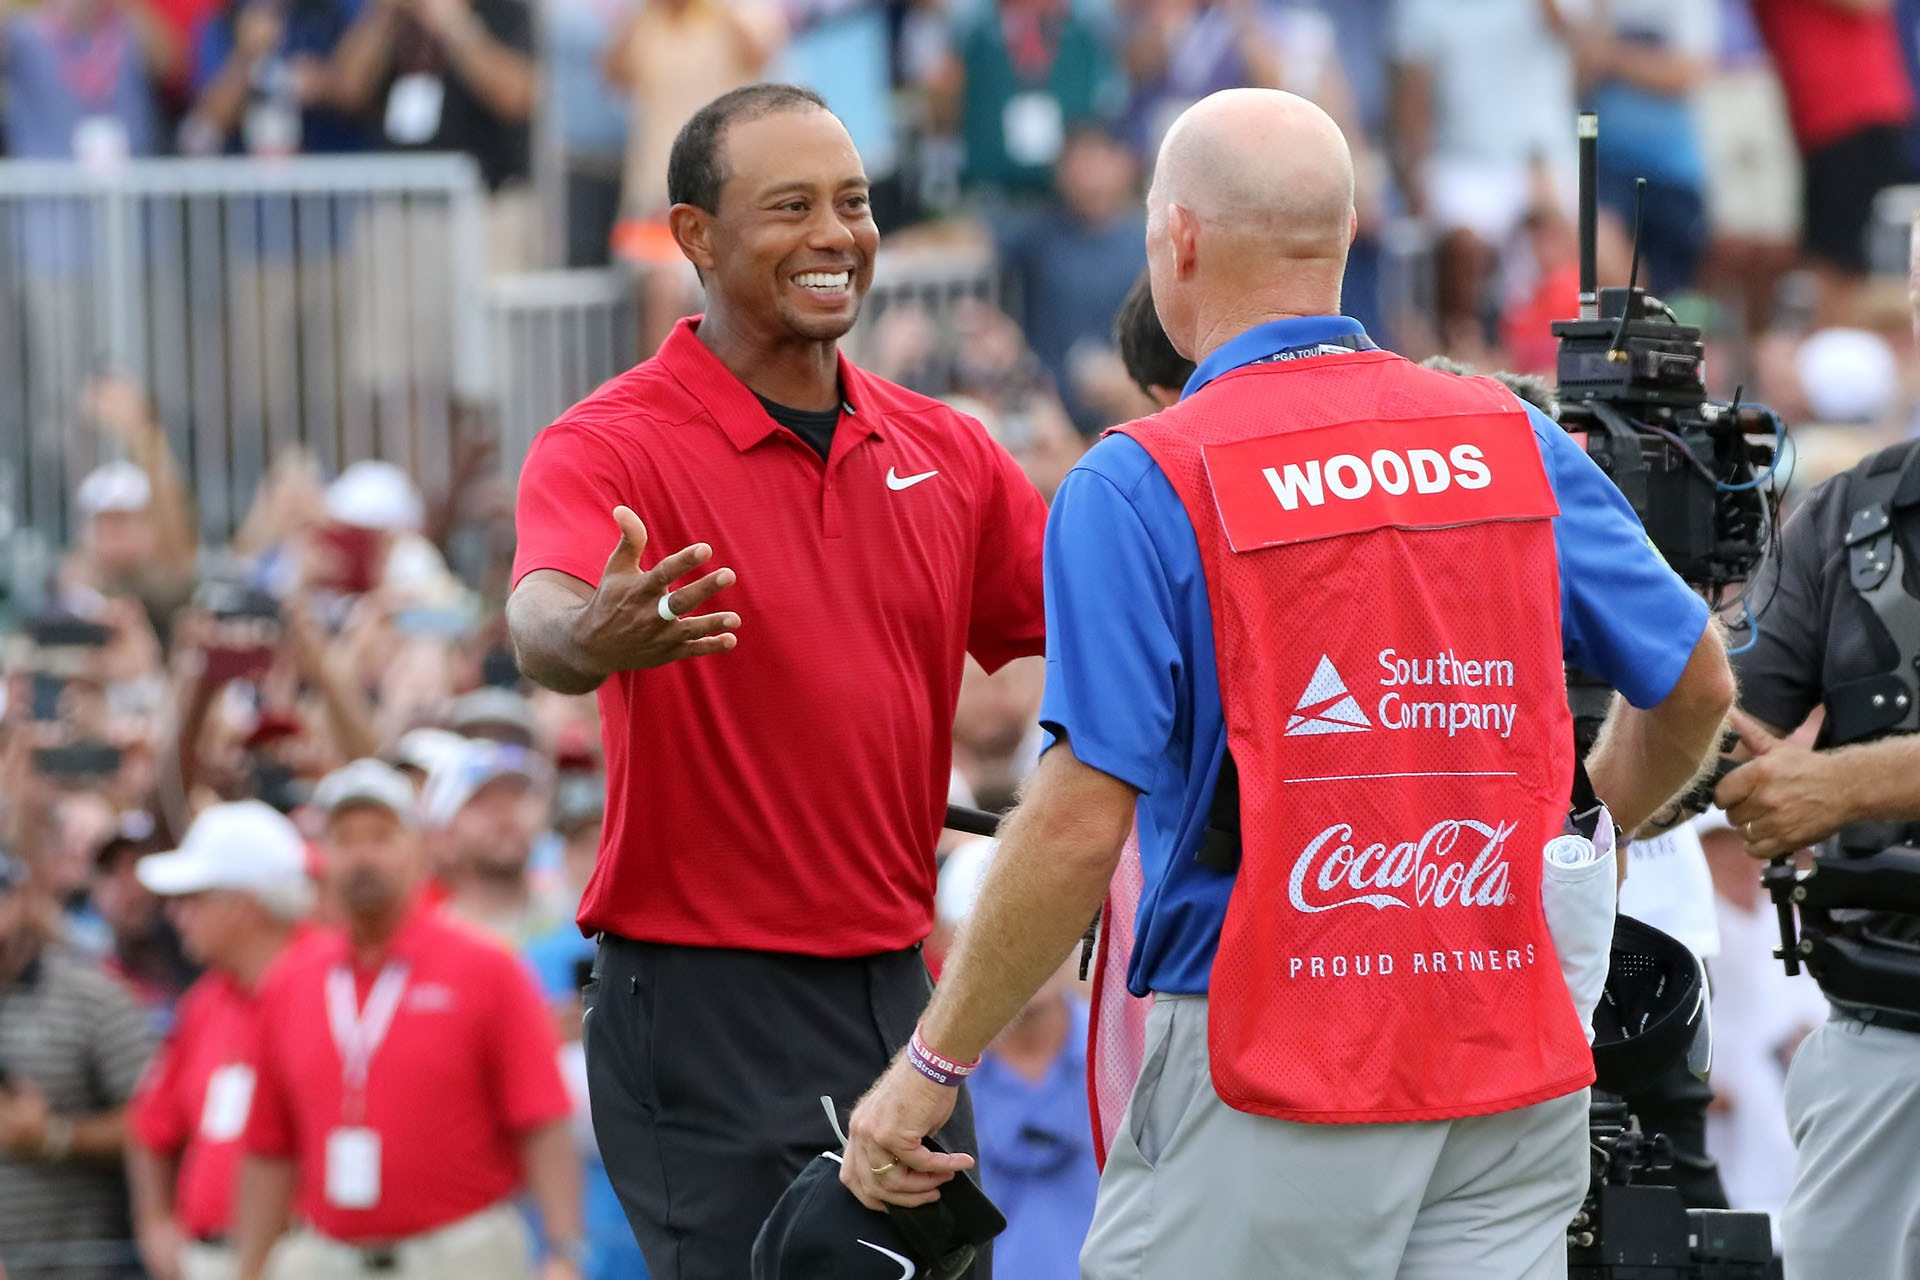 New-look Tiger Woods wins No. 80